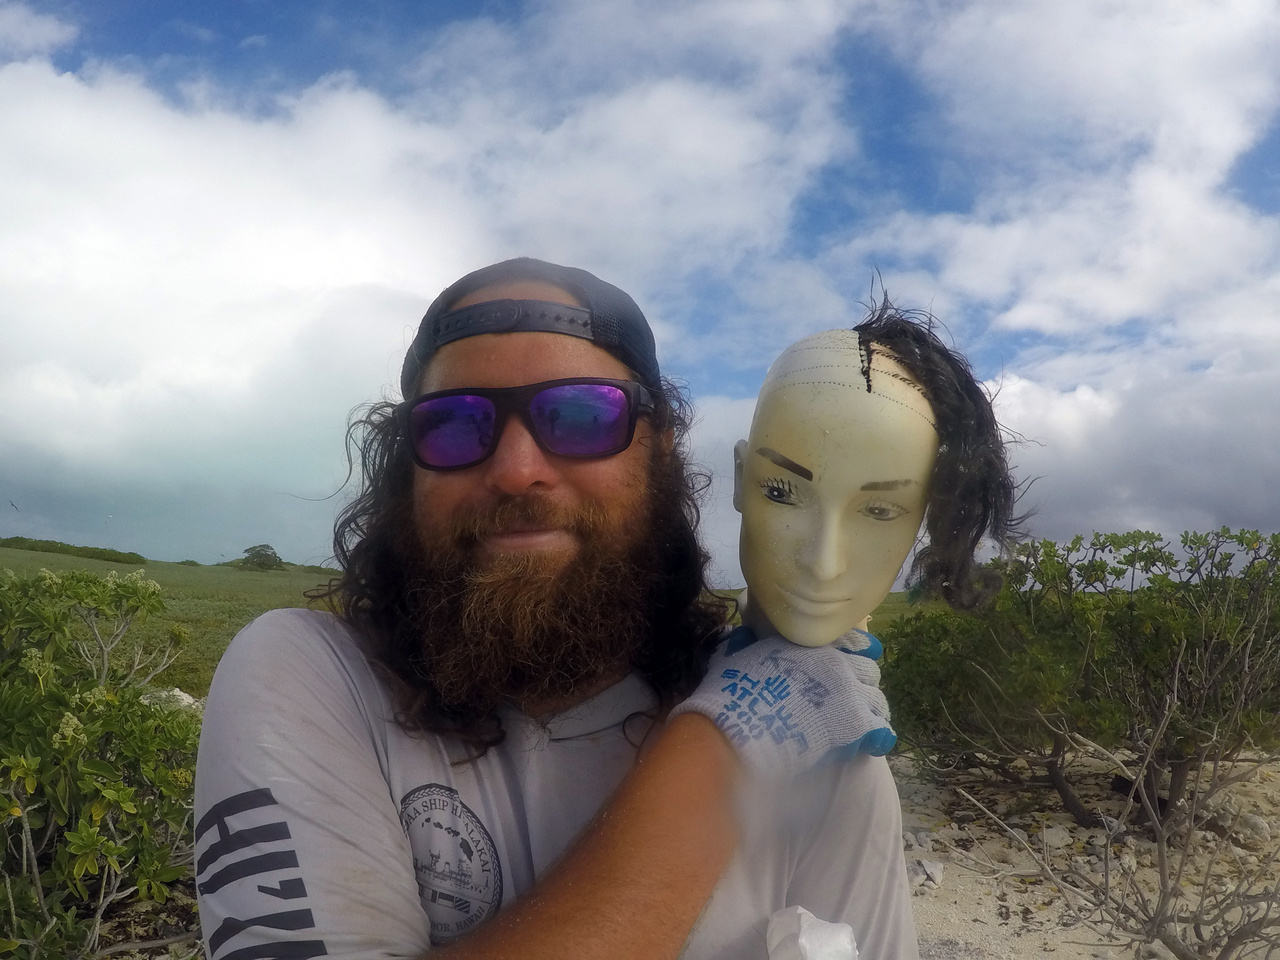 Mannequin head found on Eastern Island at Midway Atoll